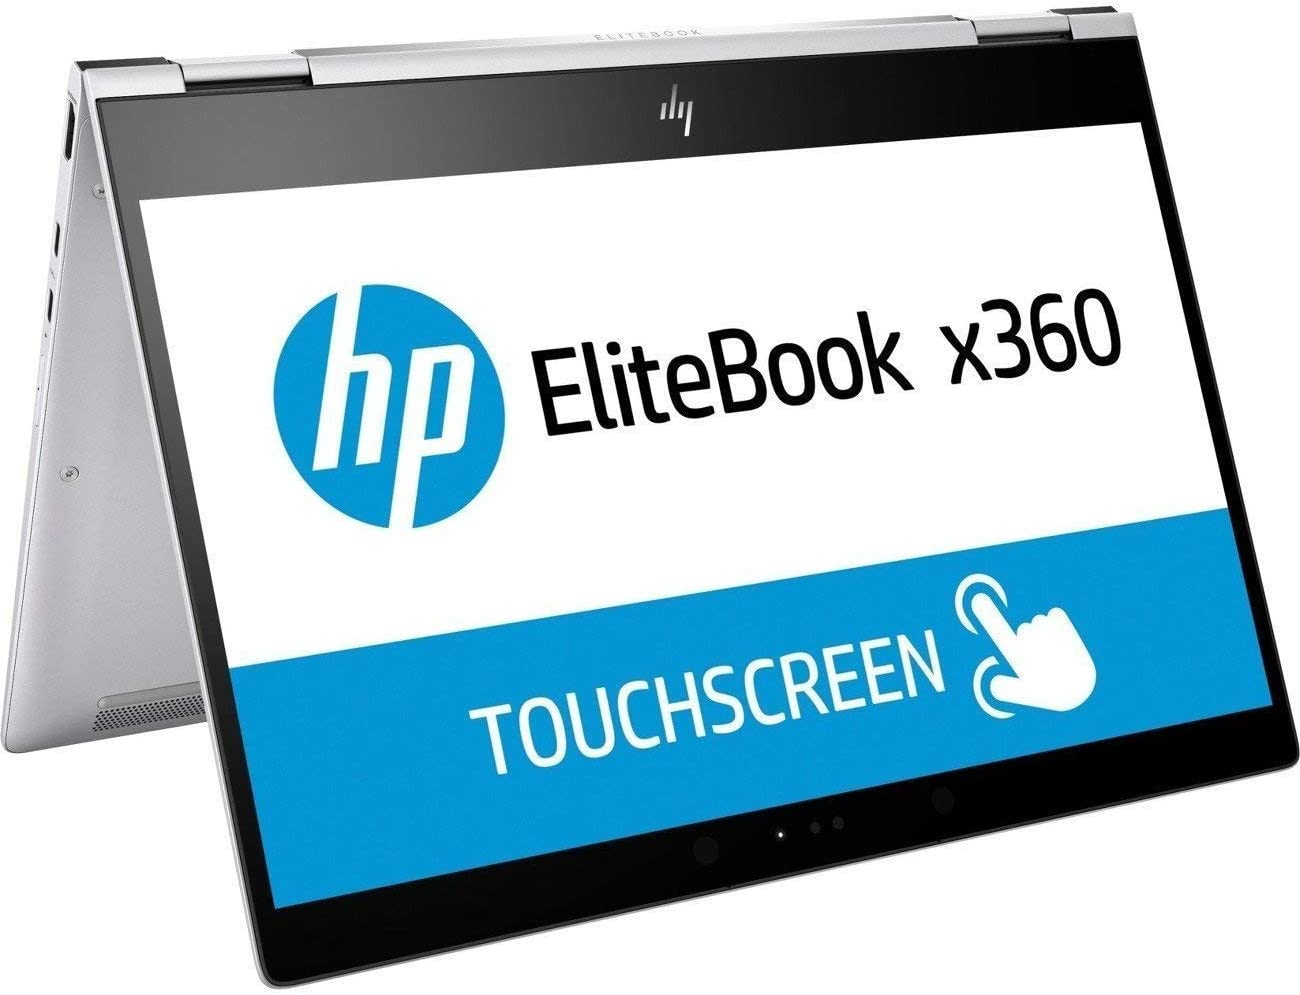 "HP 2UE50UT#ABA Elitebook X360 1020 G2 12.5"" Flip Design Notebook, Windows, Intel Core I7 2.8 Ghz, 8 GB Ram, 256 GB SSD, Silver"